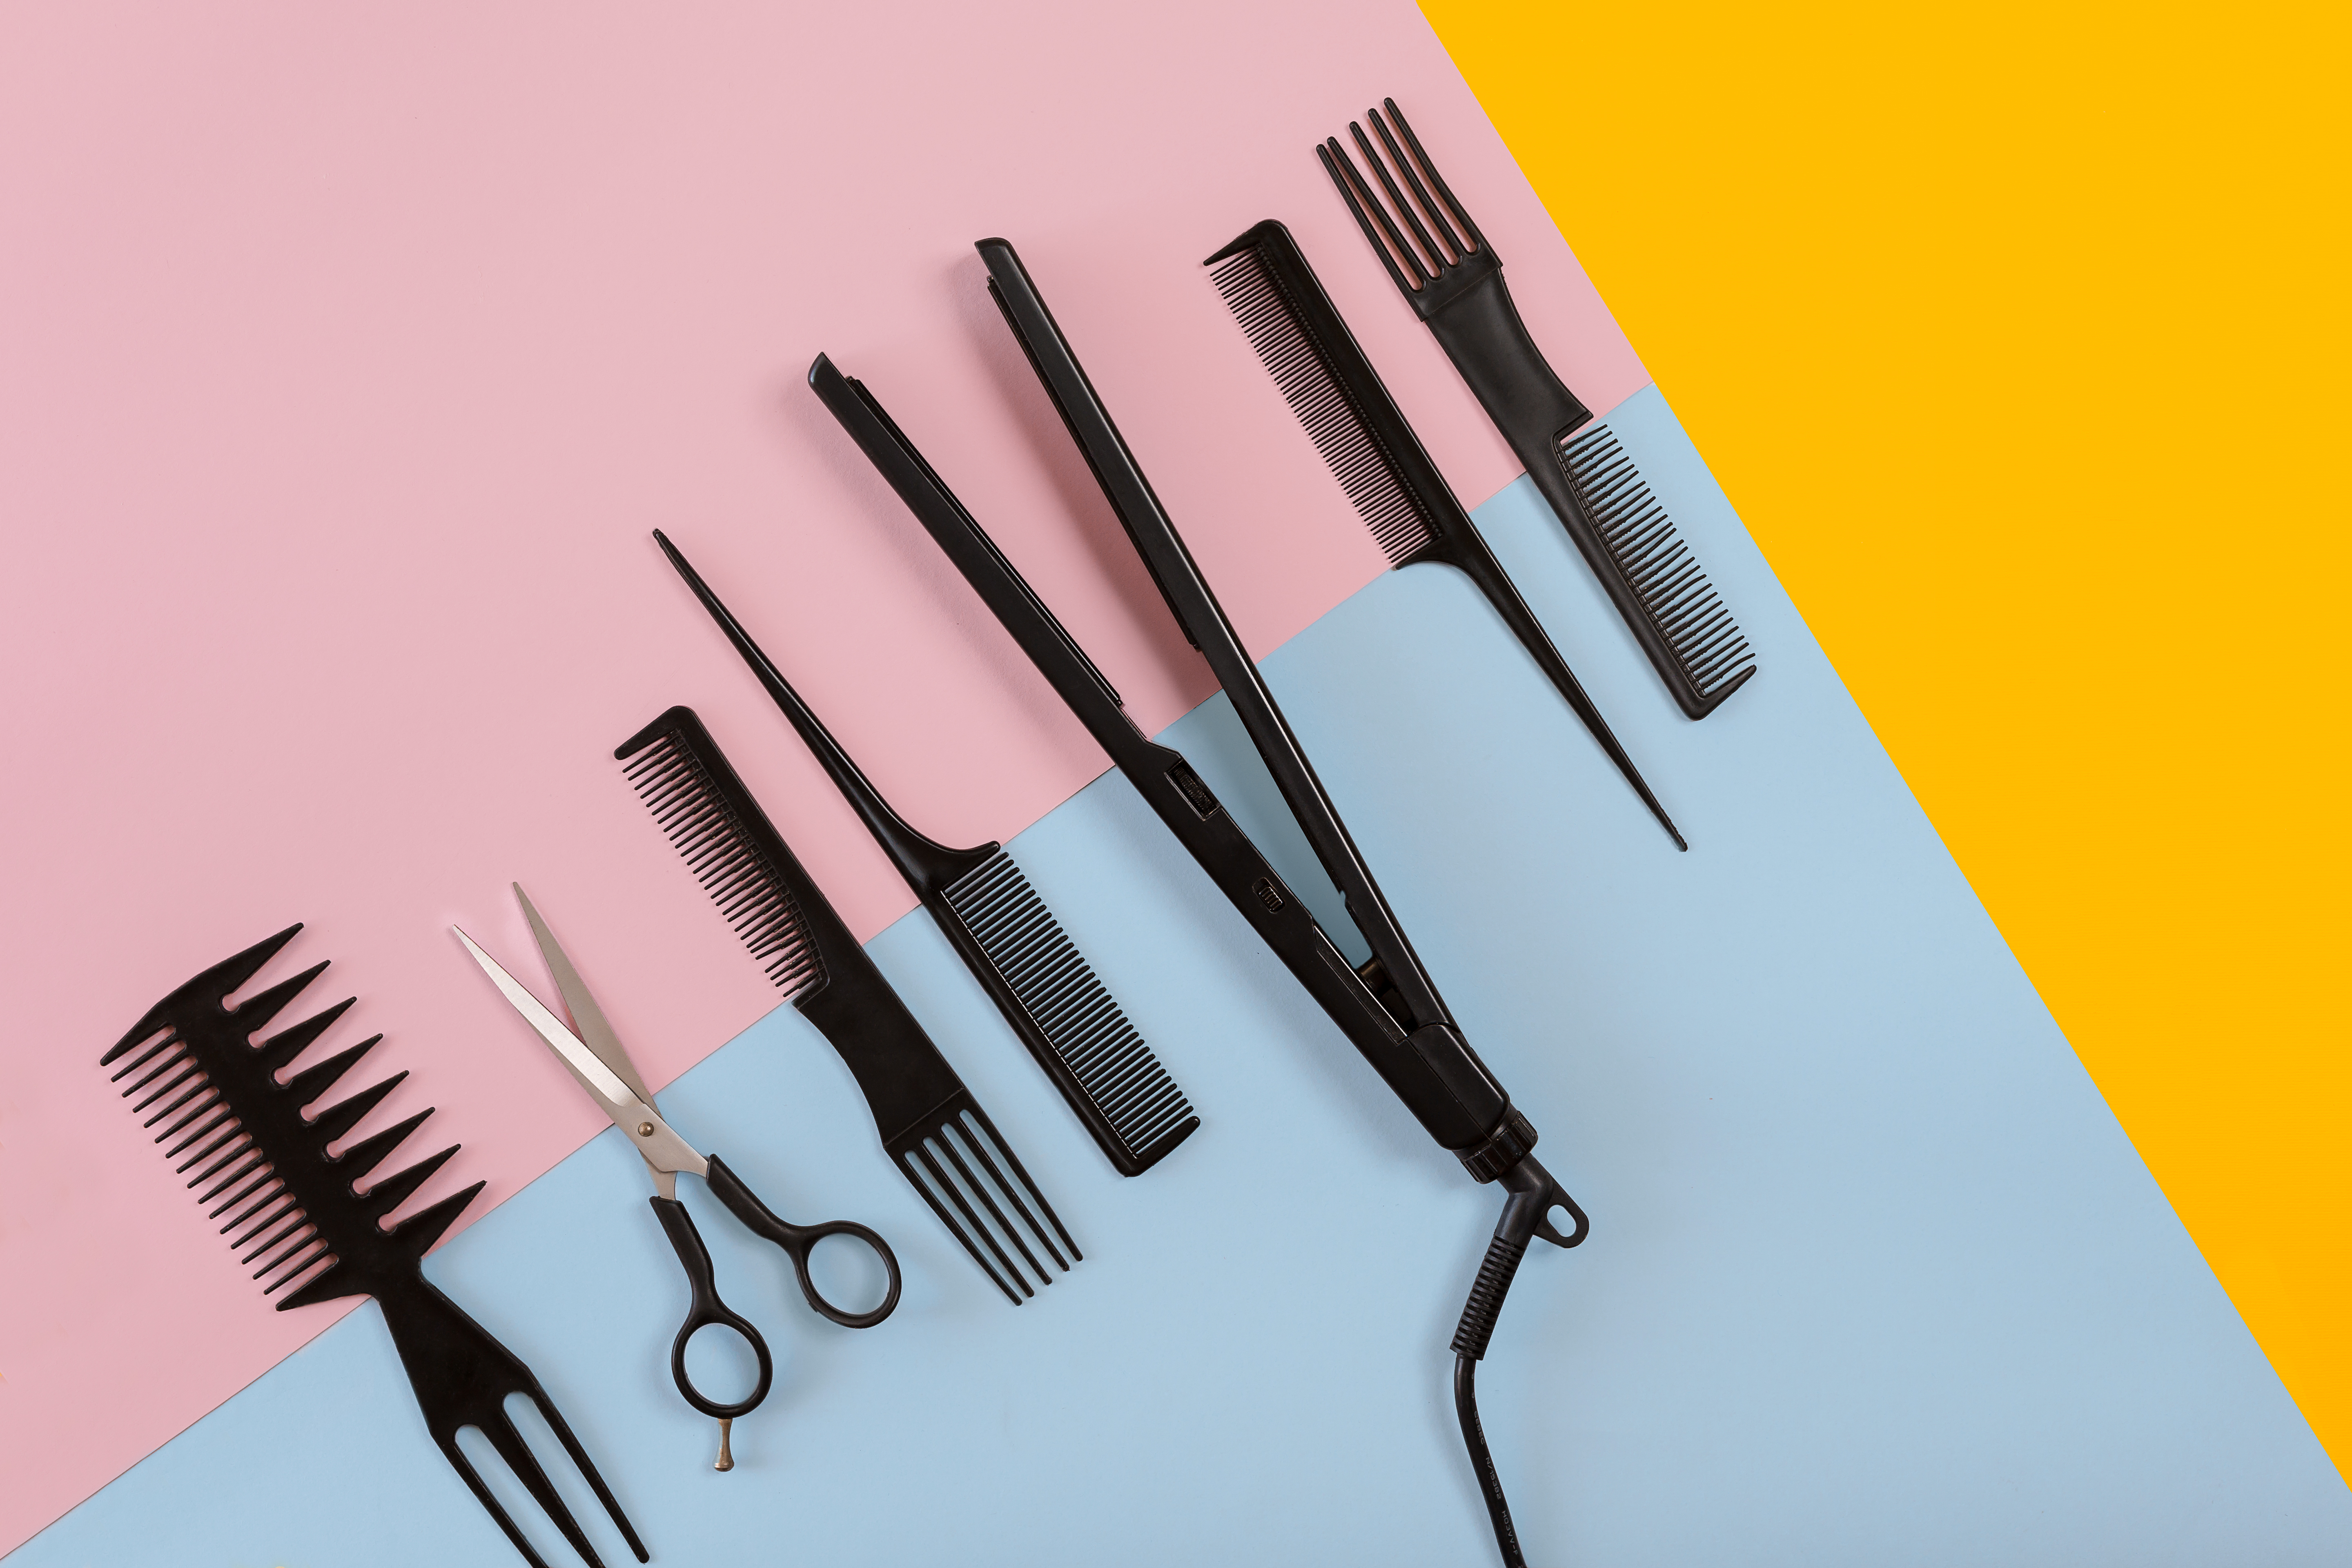 Various hair styling devices on the color blue, yellow, pink paper background, top view